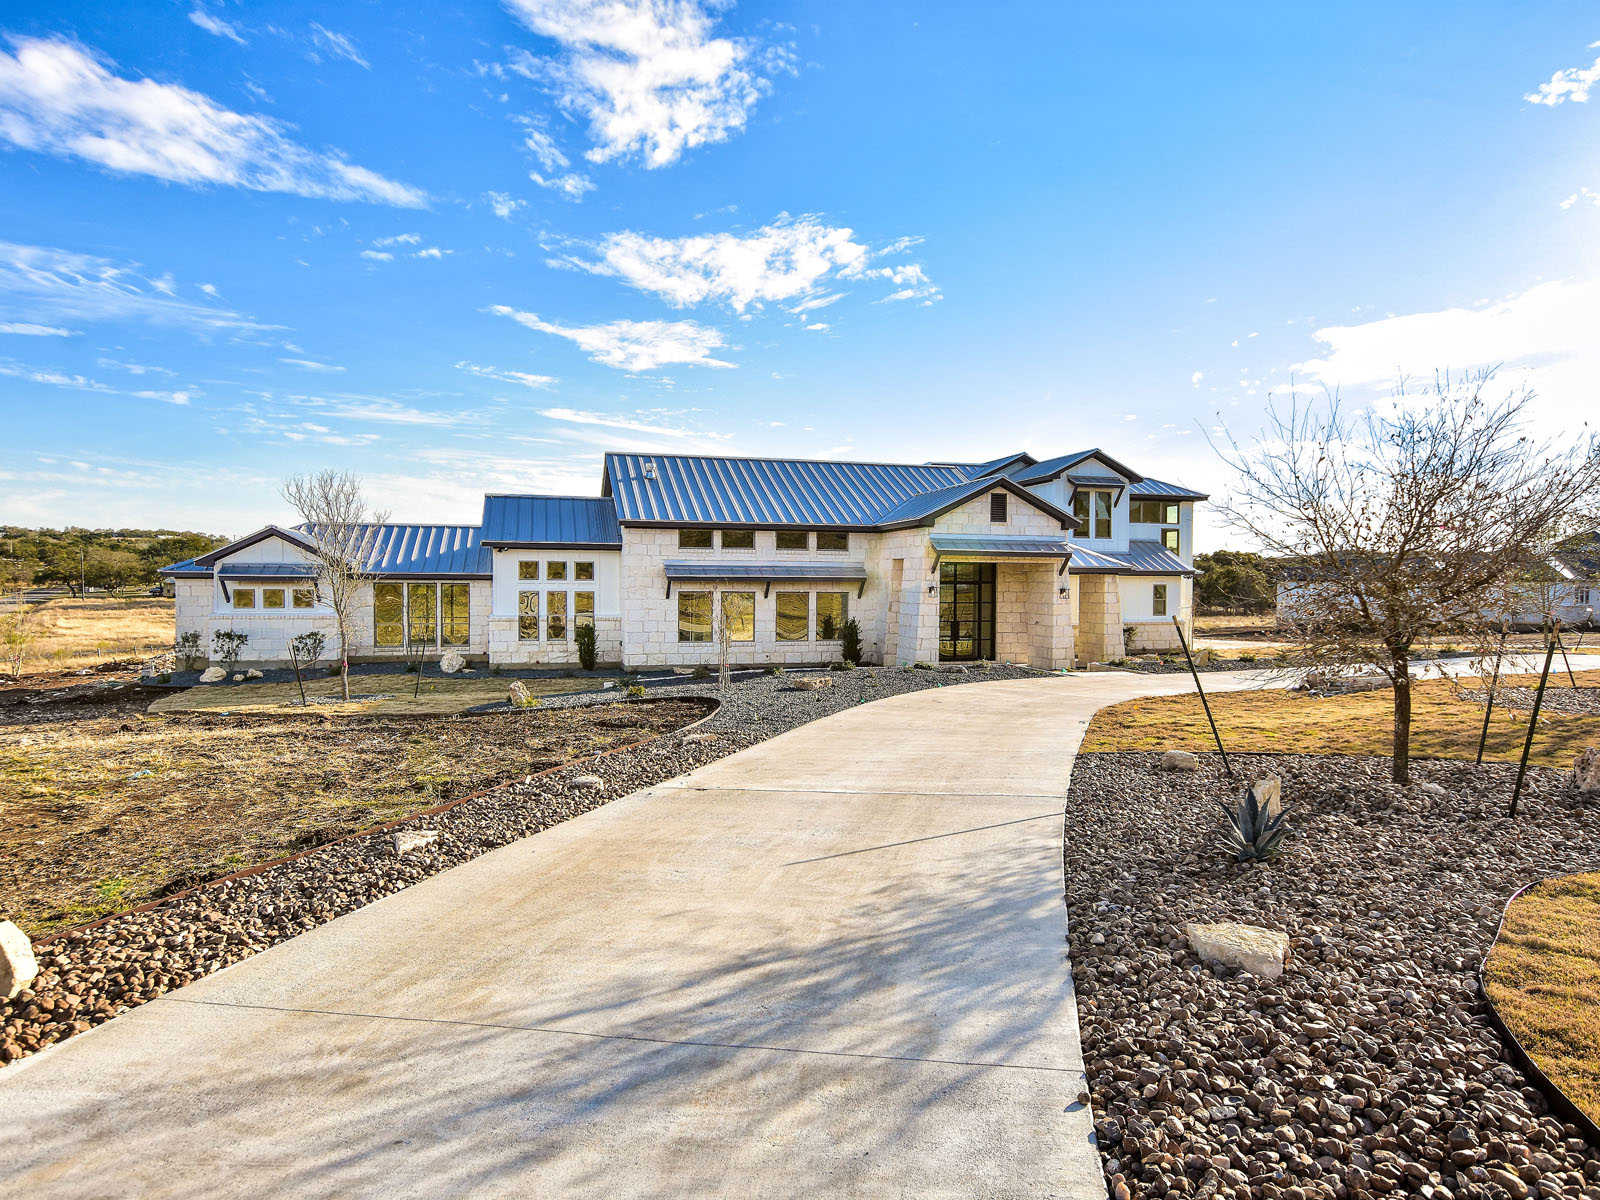 Single Family Home for Sale at Modern Style Farm House 16709 Whispering Breeze Austin, Texas, 78738 United States